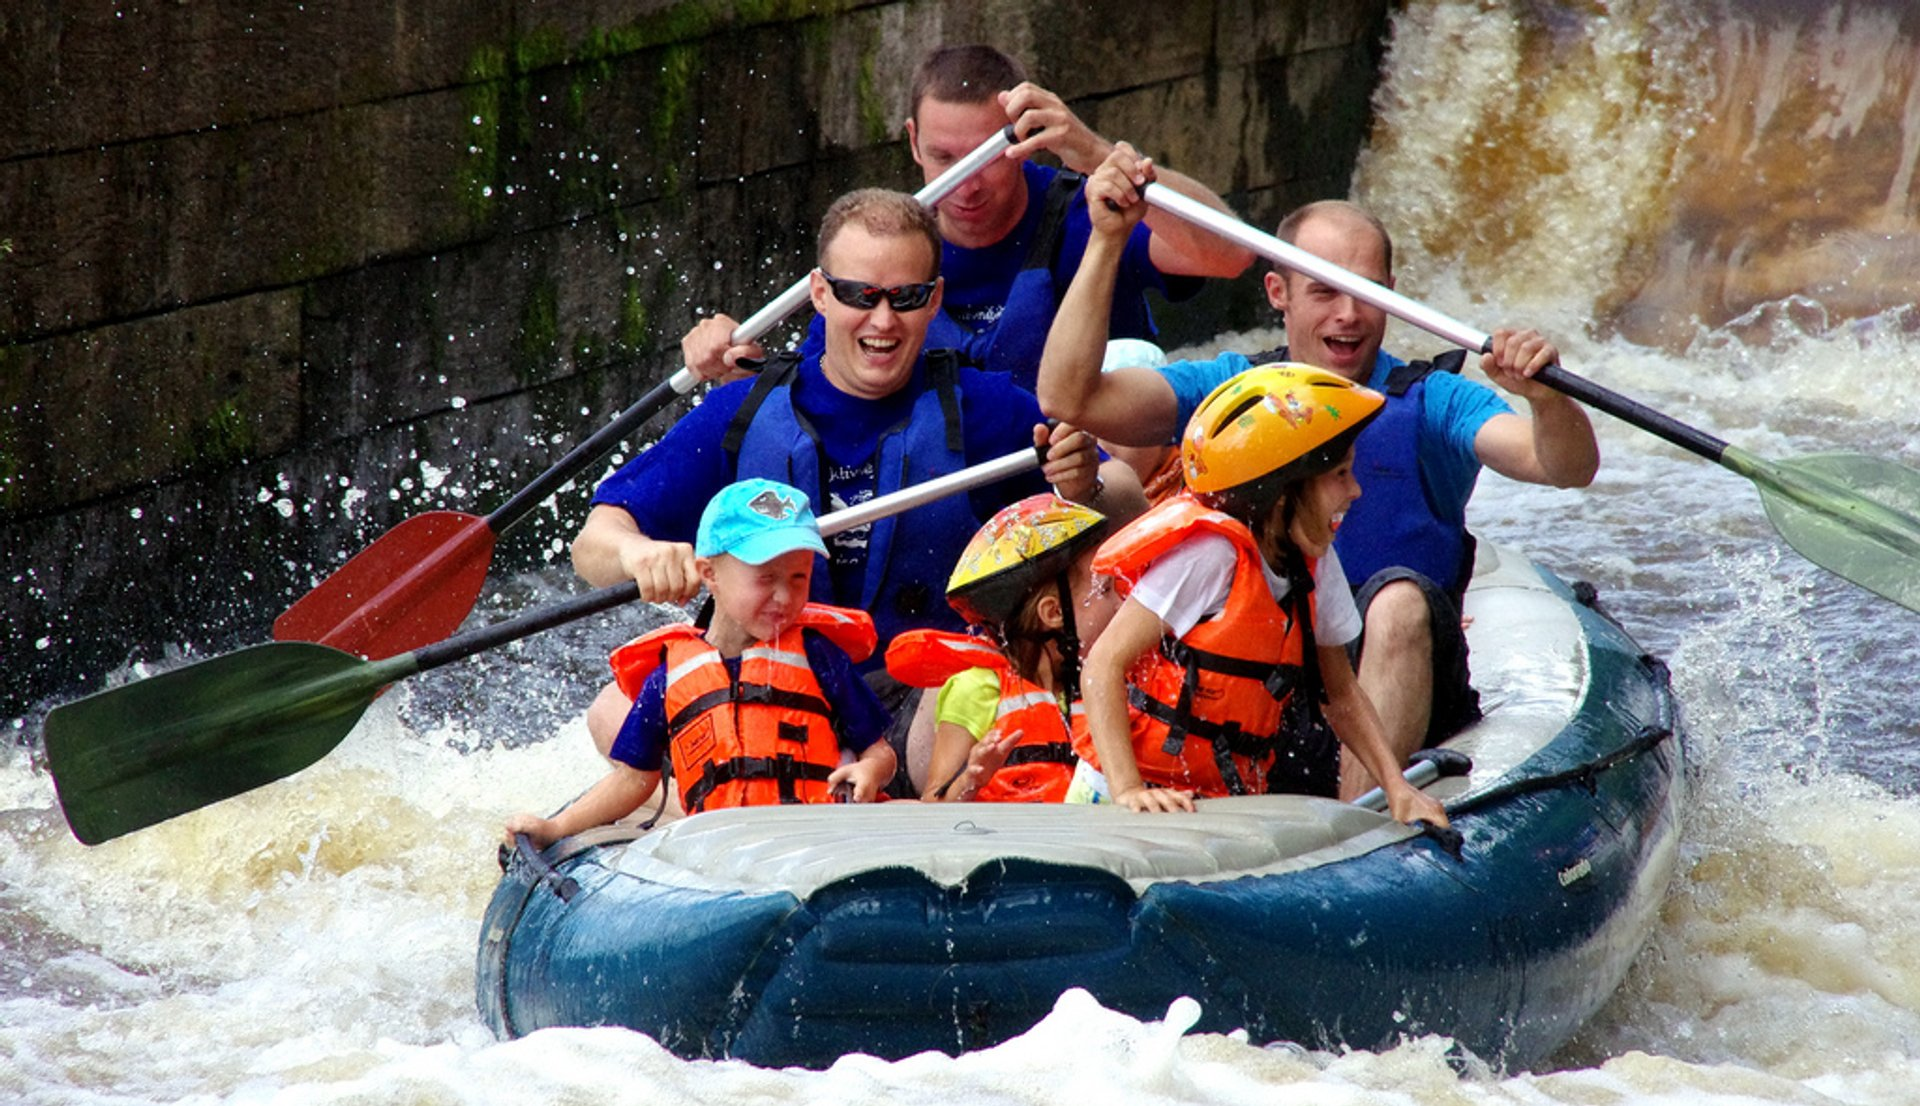 Rafting  in Czech Republic 2019 - Best Time